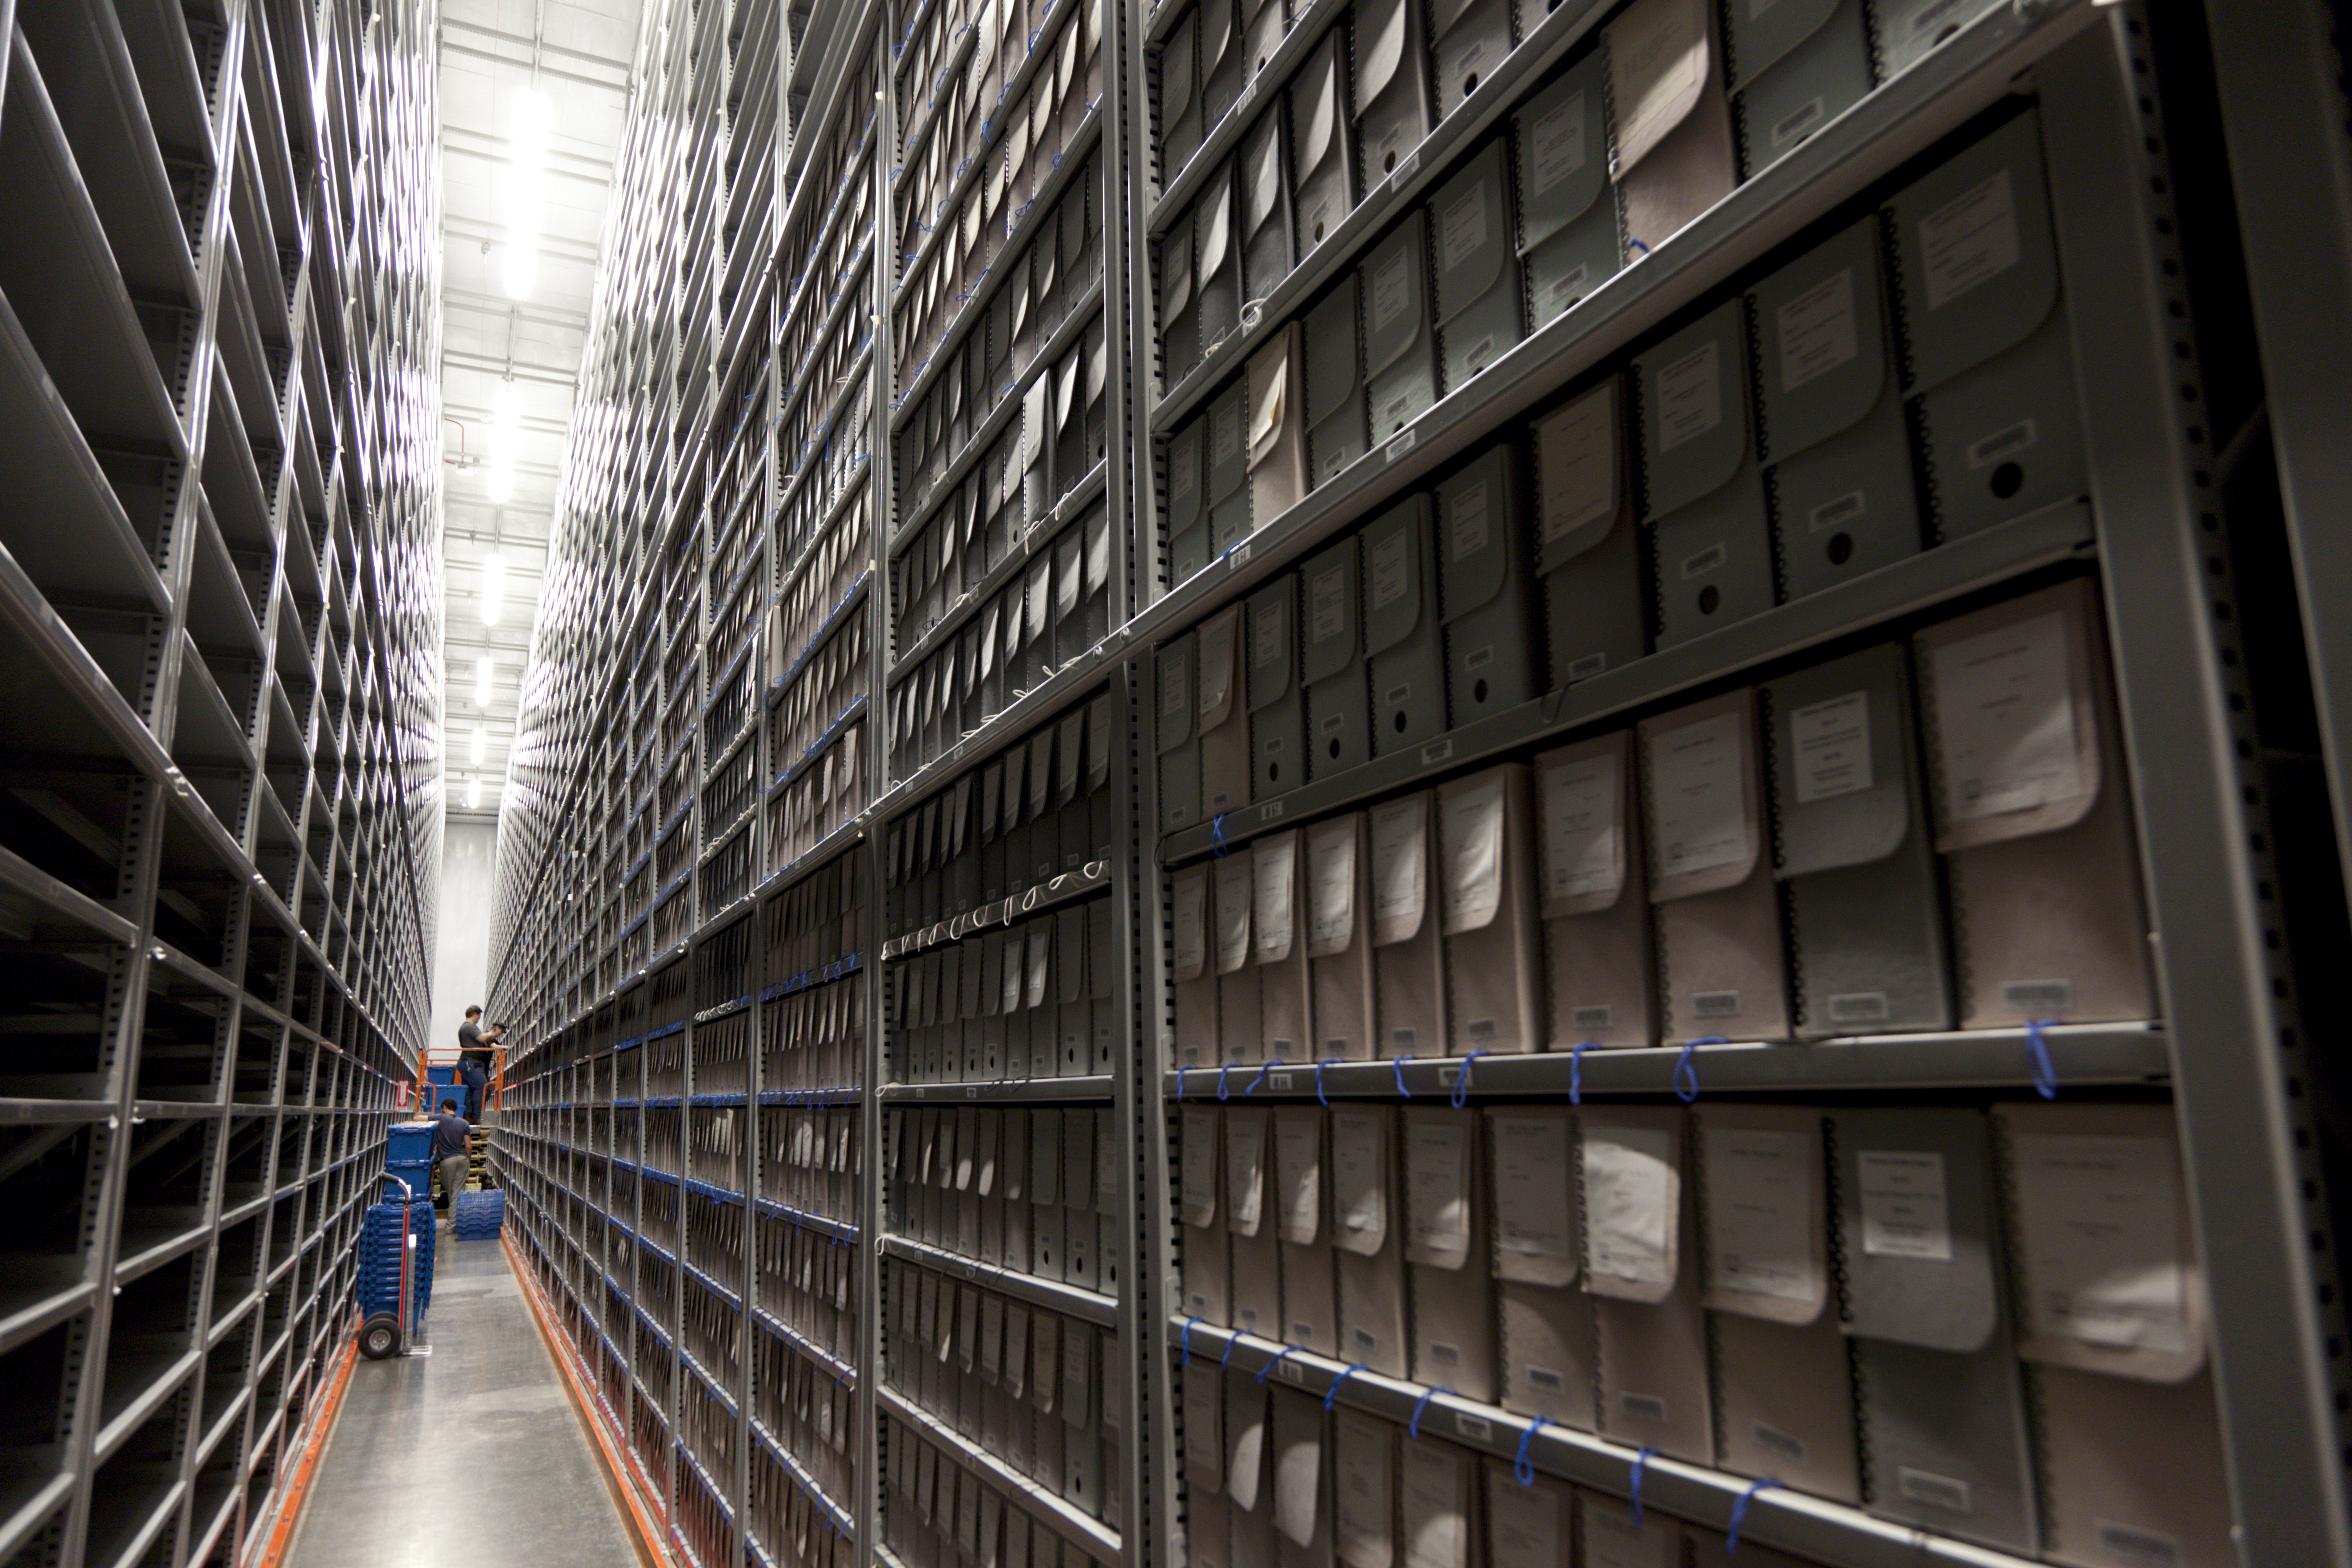 Special Collections materials are stored in a hi-density vault on site